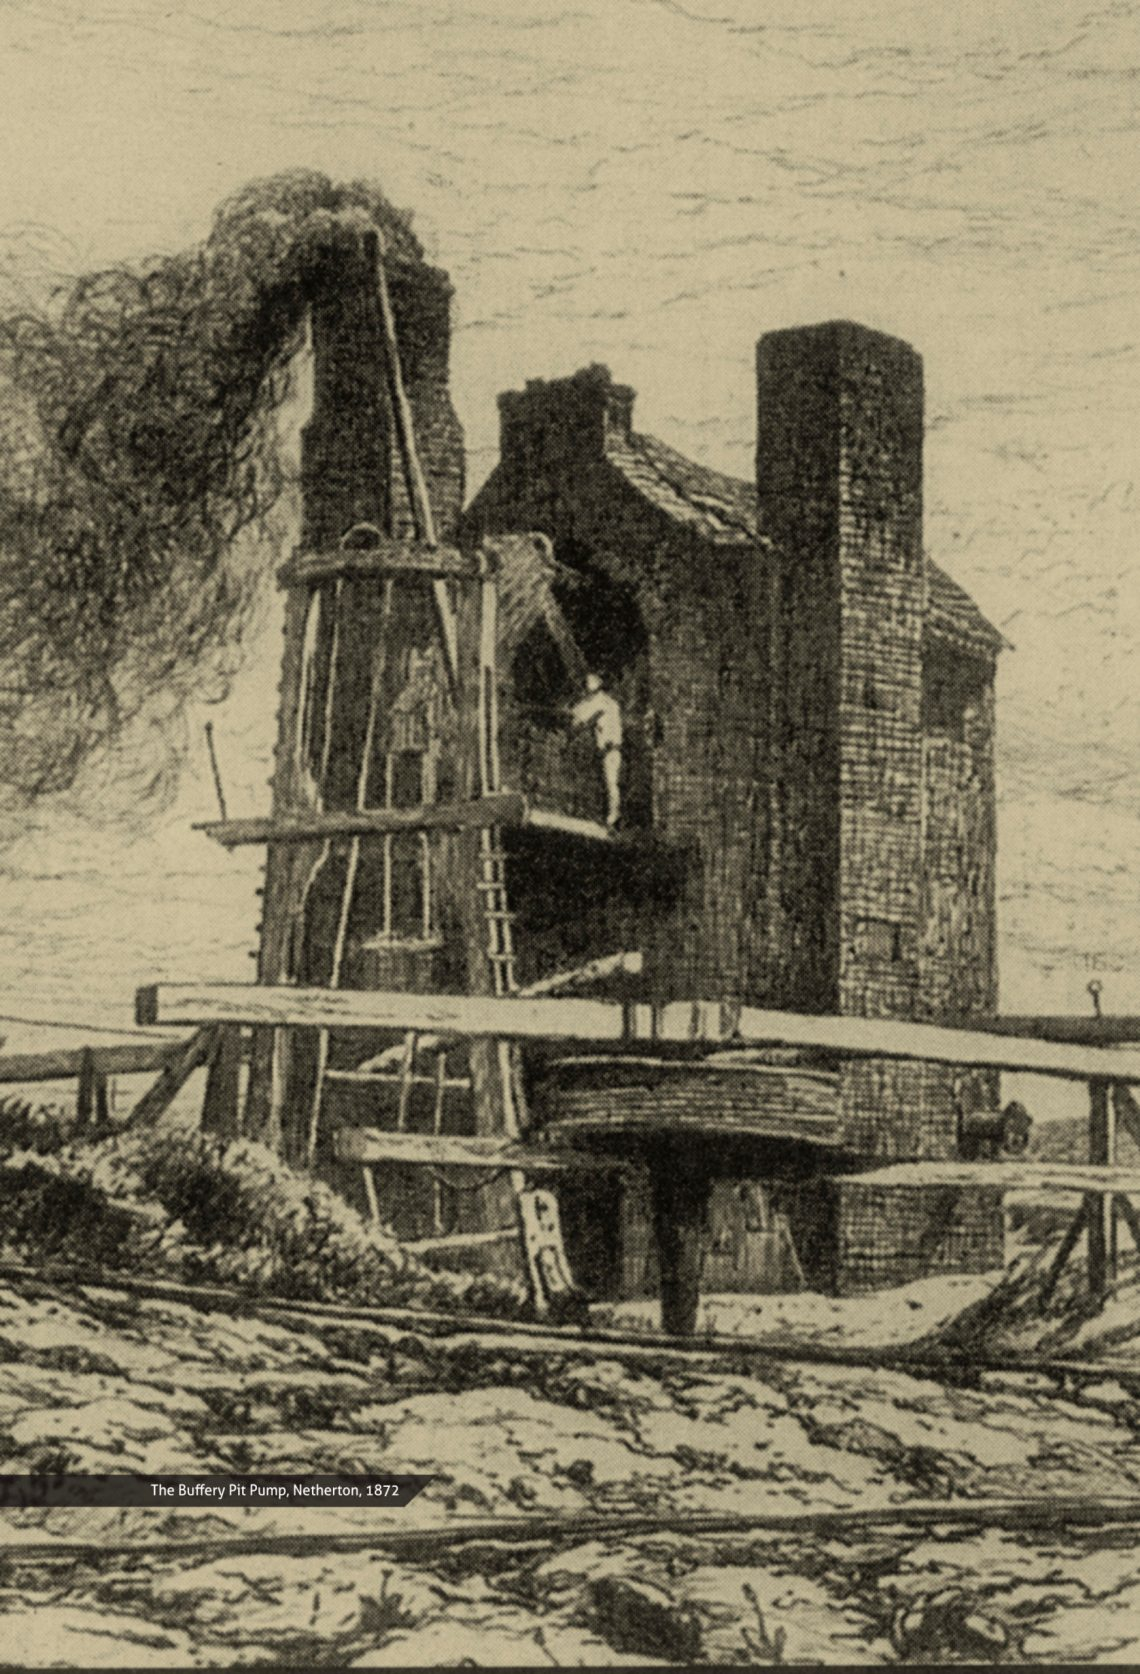 Image of the old Bufferty pumping engine in the West Midlands from 1872 (contemporary sketch)